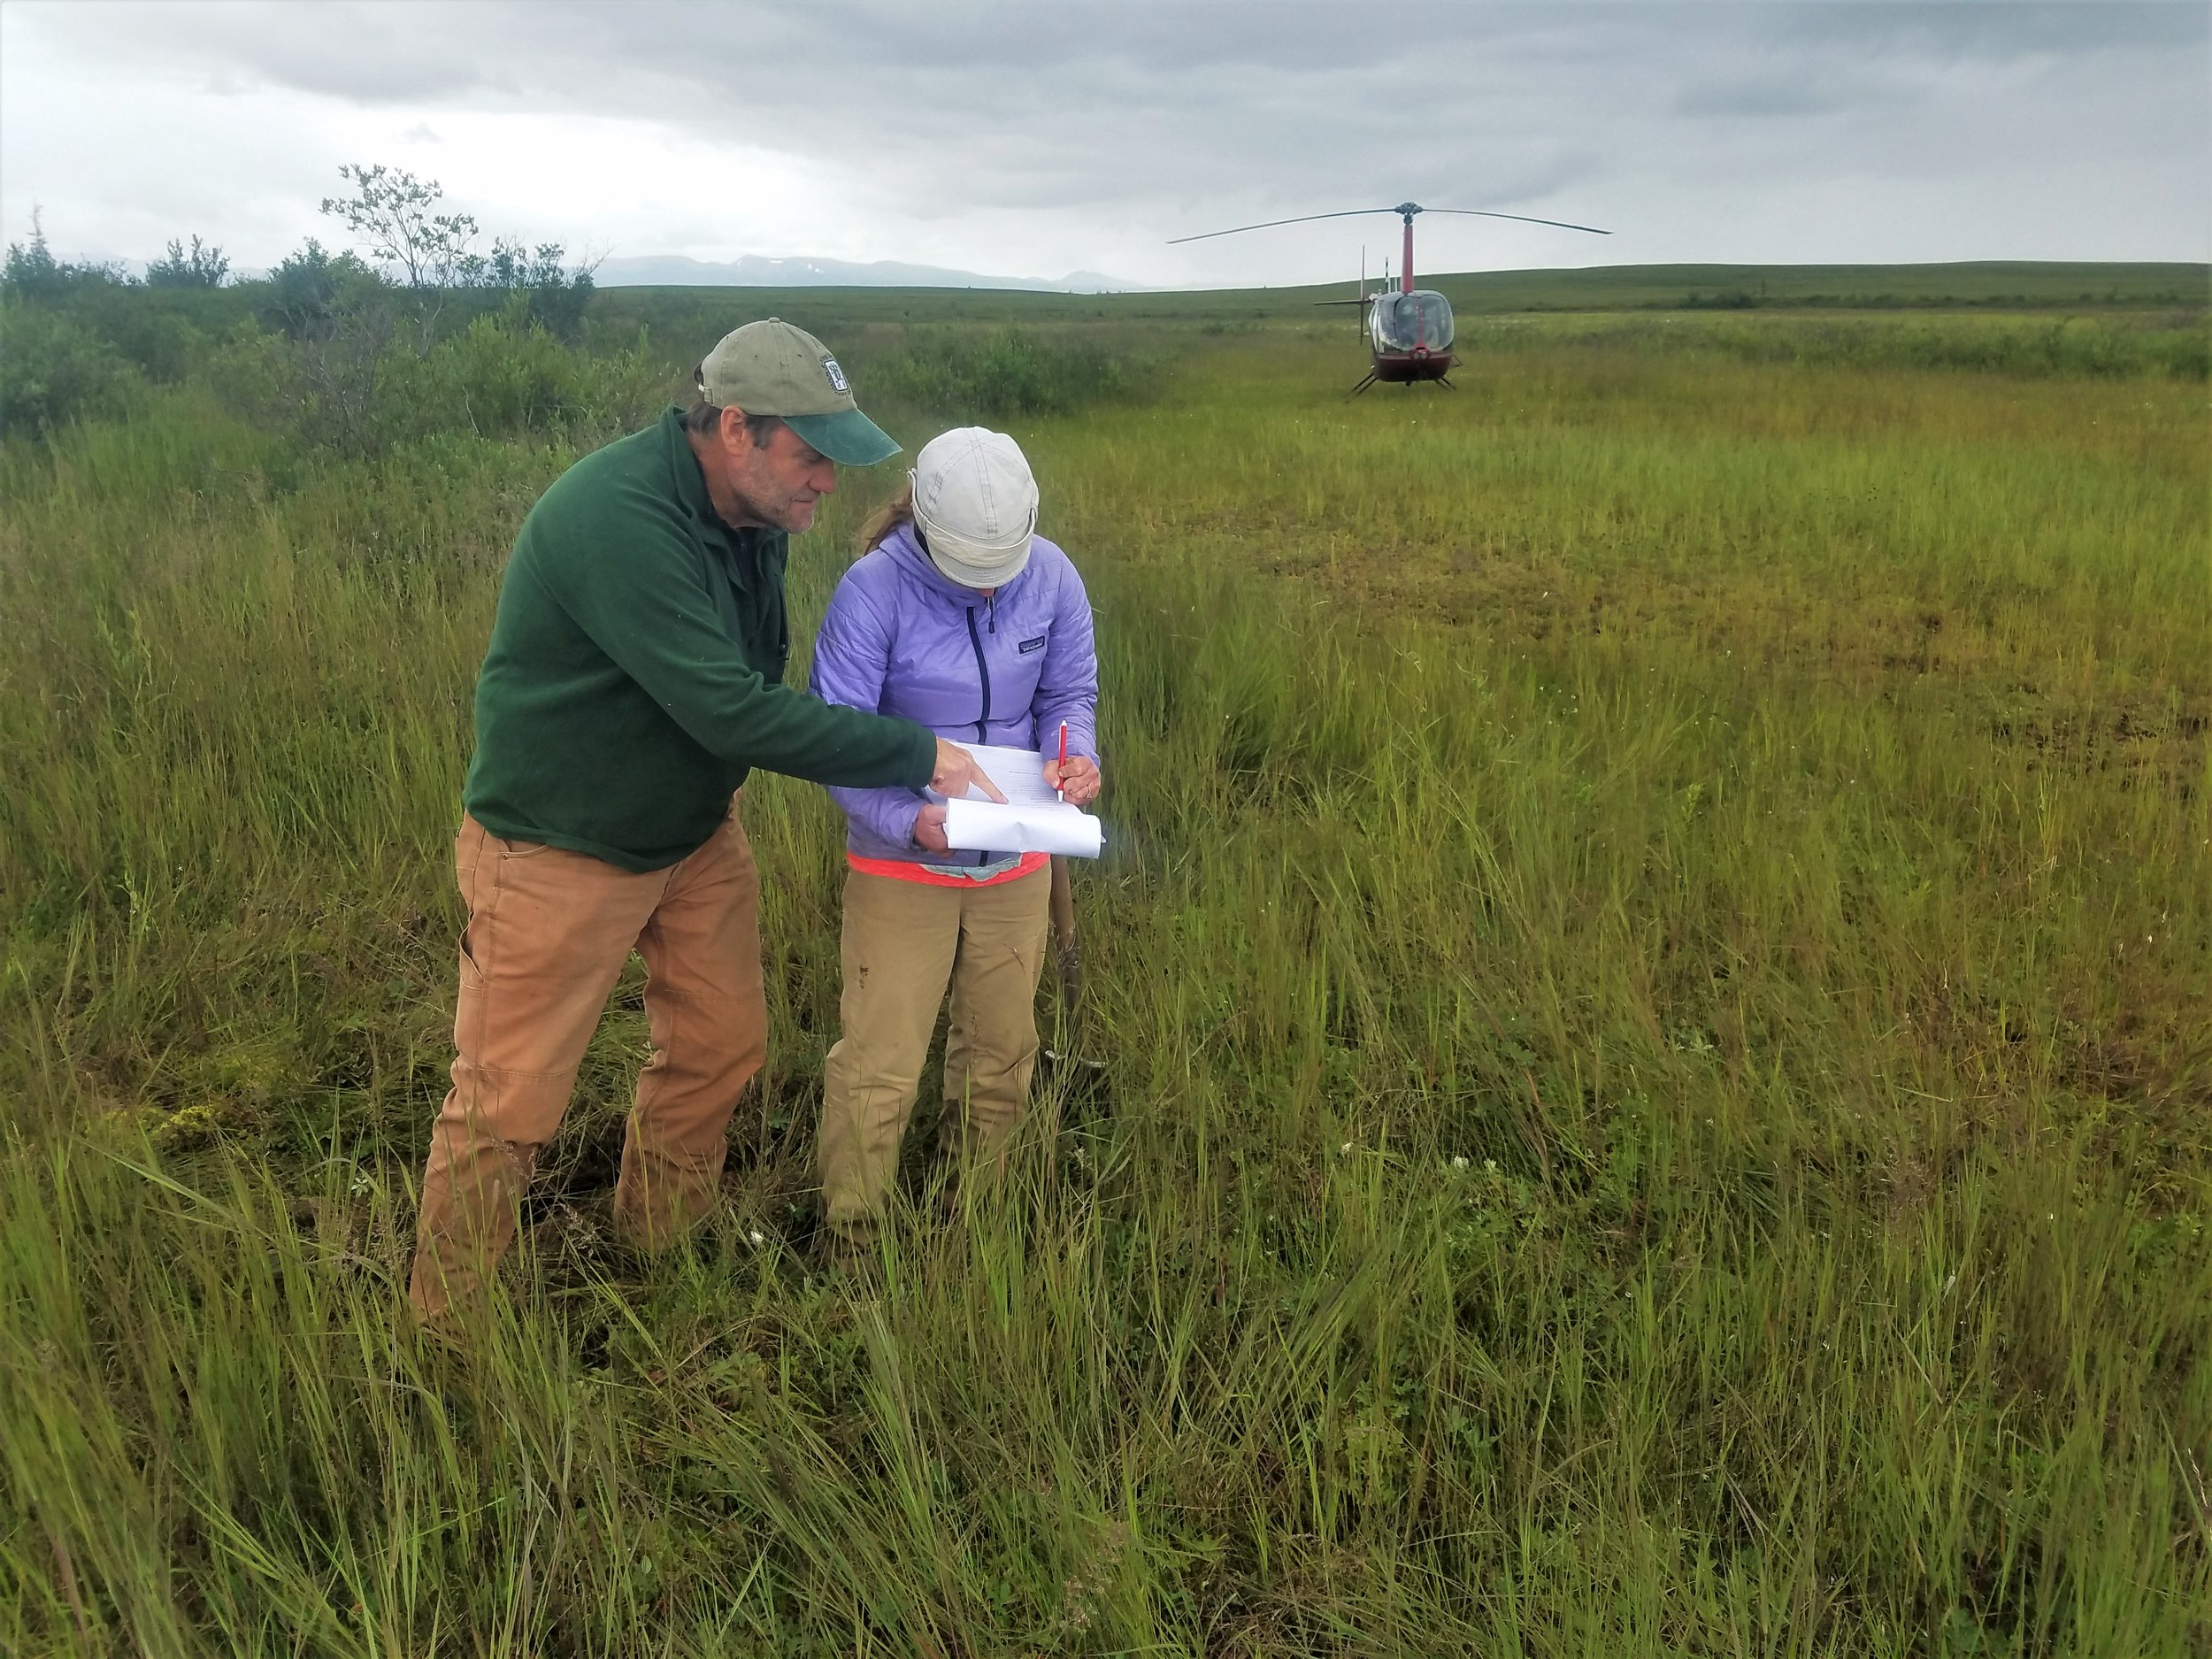 Andy Robertson (left) and Elizabeth Powers (right) taking field notes on dominant hydrophytic vegeation, landforms, and other site observations . Photo Credit: Kevin Stark